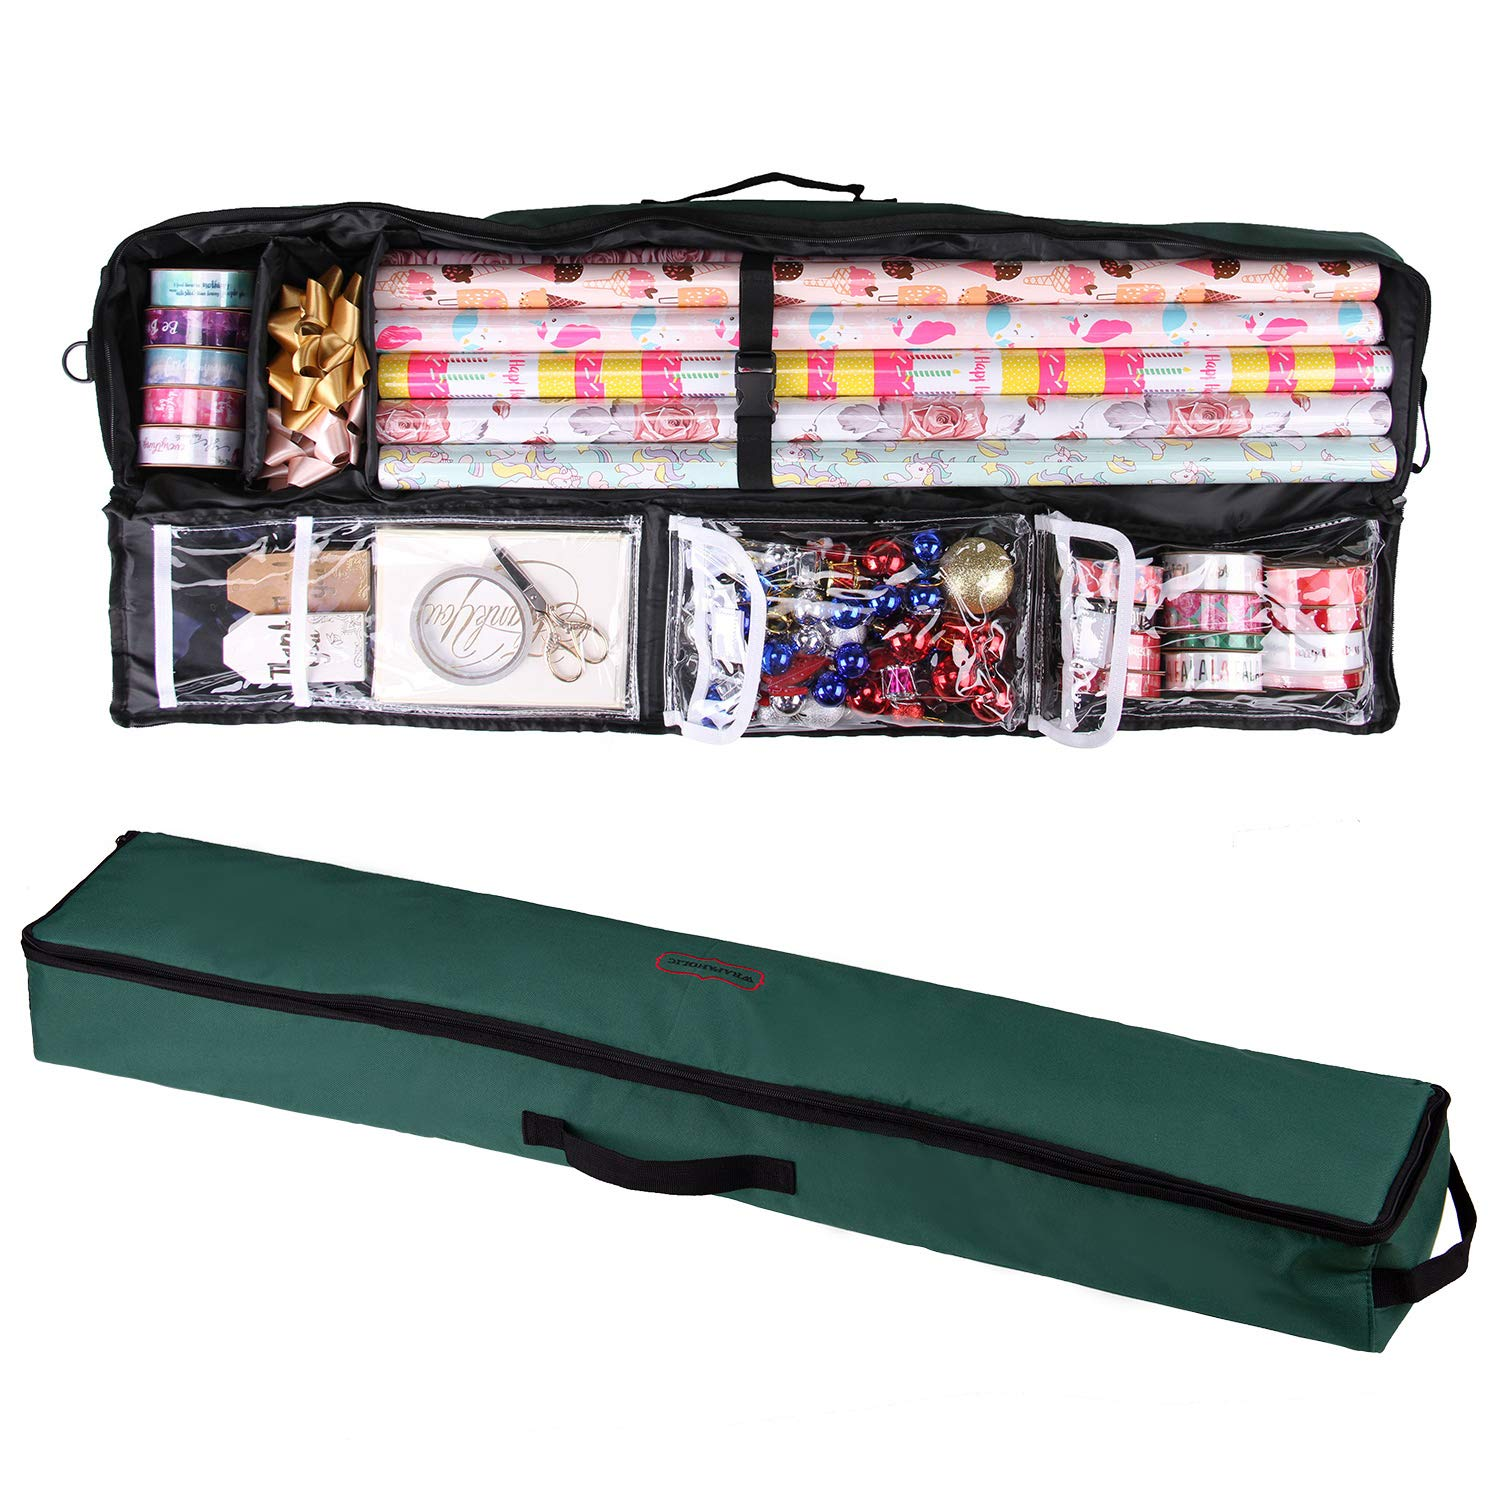 WRAPAHOLIC Gift Wrapping Paper Storage - Under Bed Gift Wrap Organizer Storage Bag with Handle - Dark Green